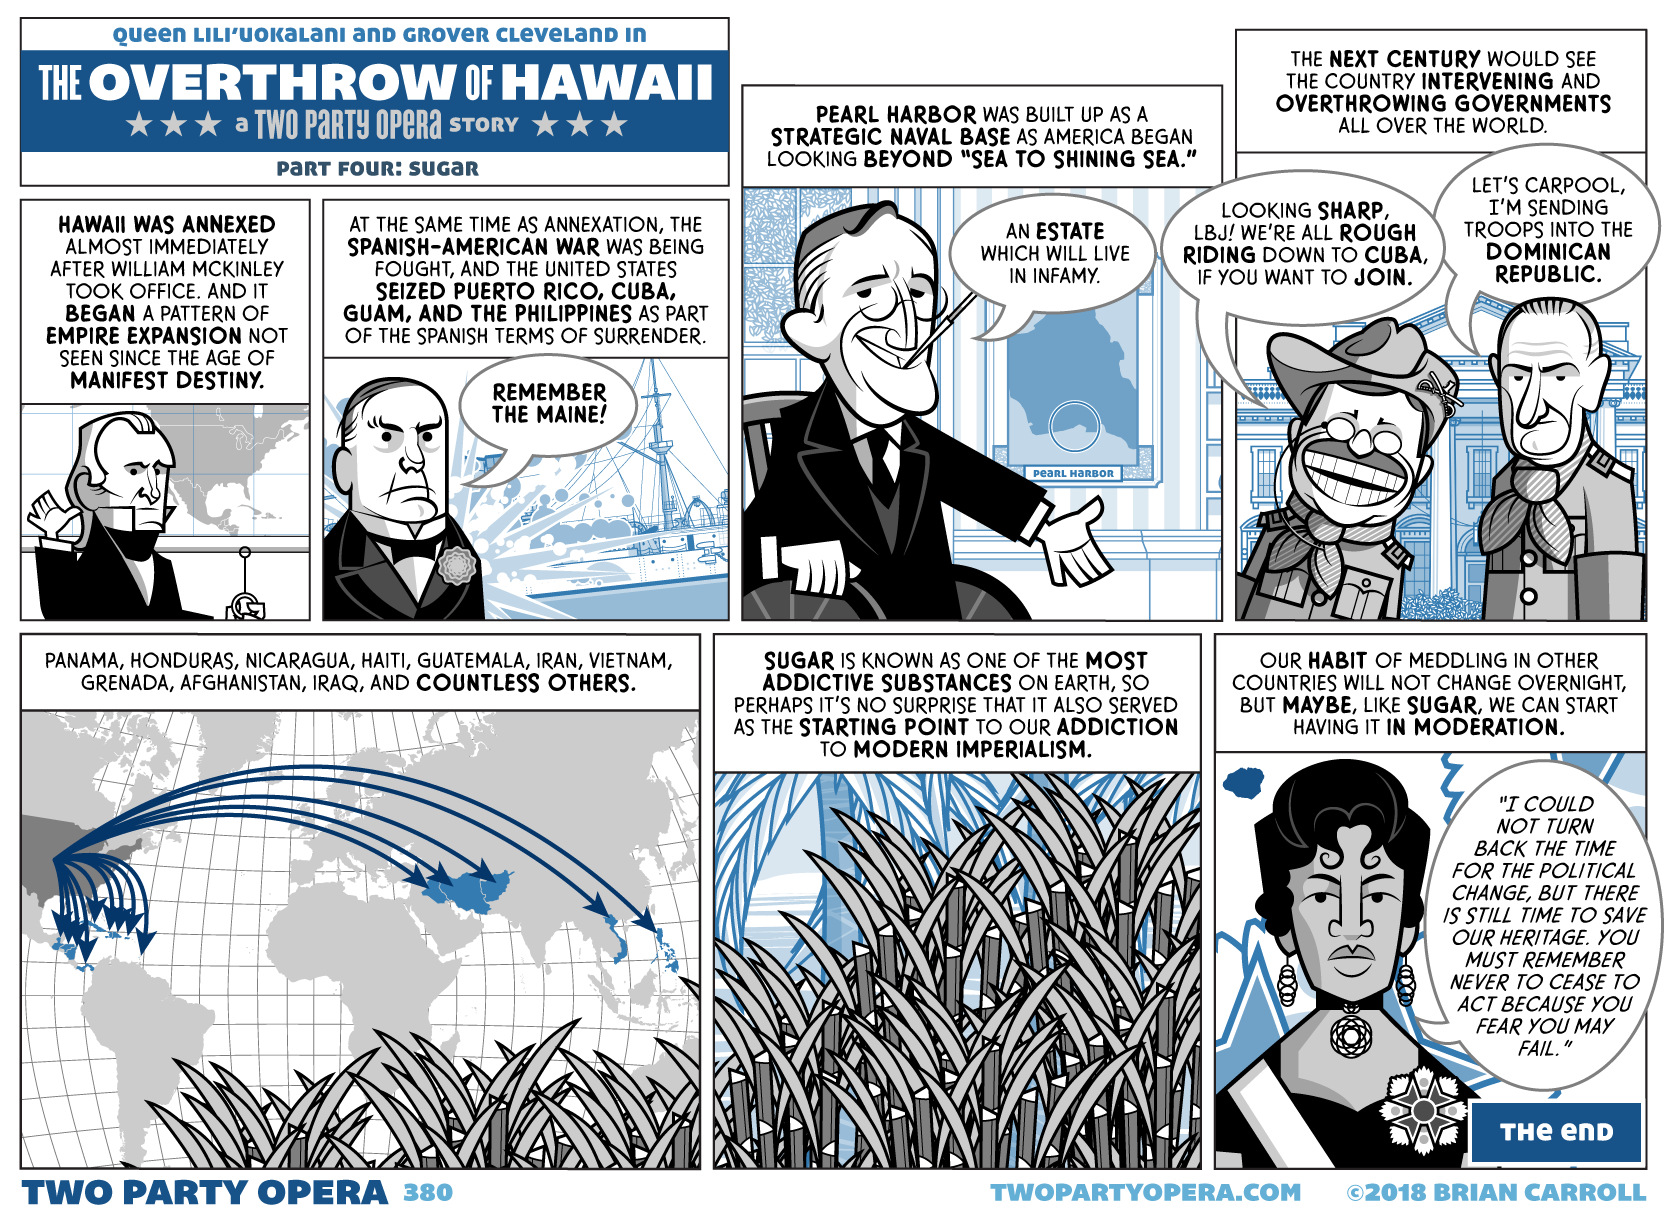 The Overthrow of Hawaii – Part Four: Sugar